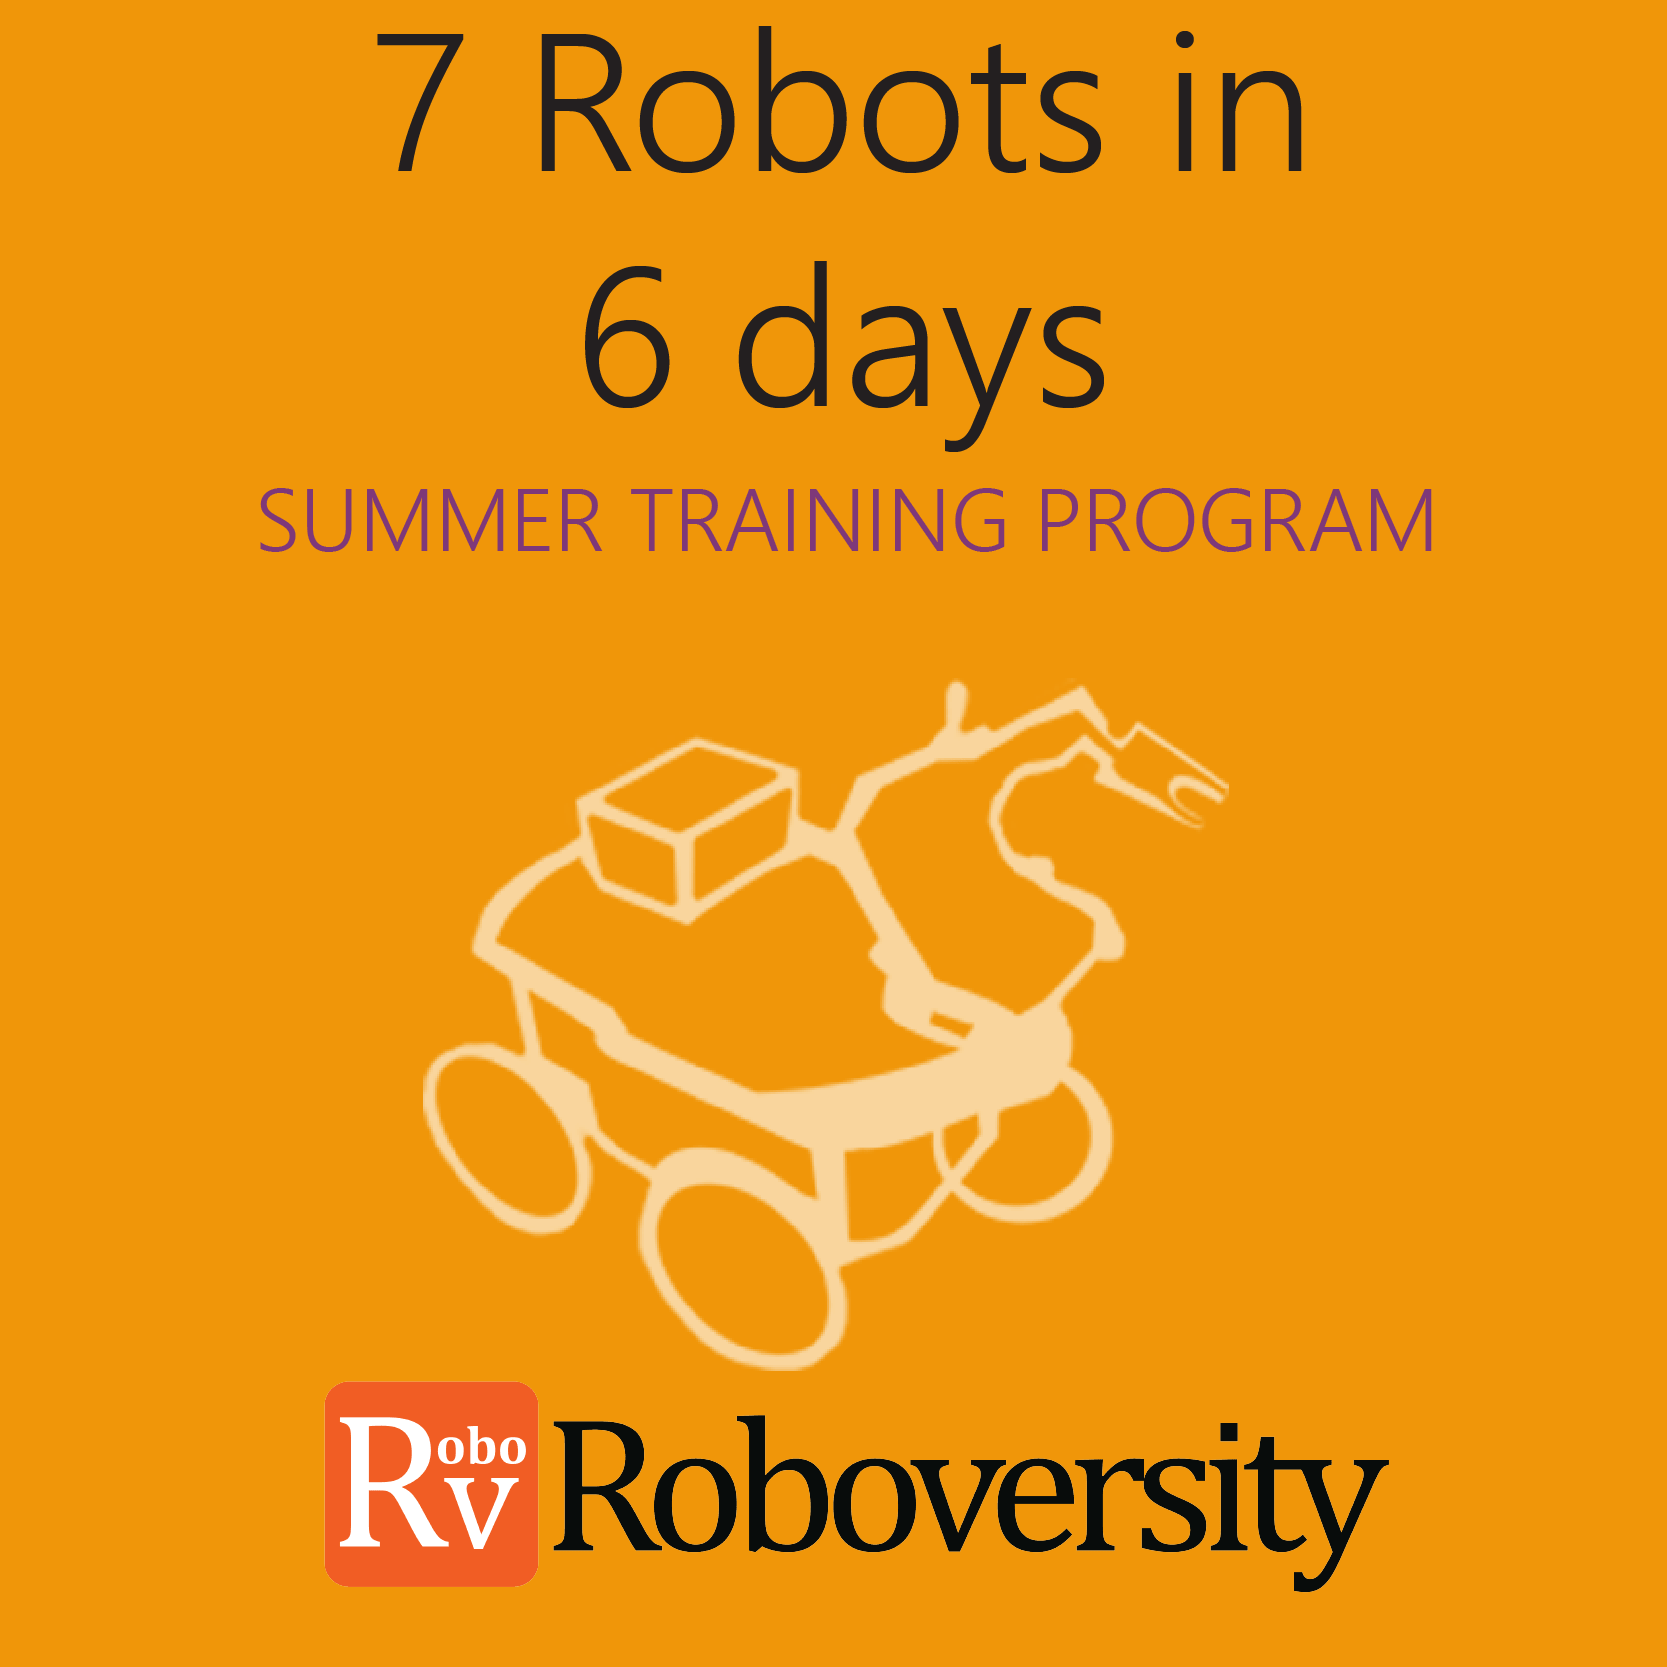 Summer Training Program in Robotics - 7 Robots in 6 Days in Vijayawada